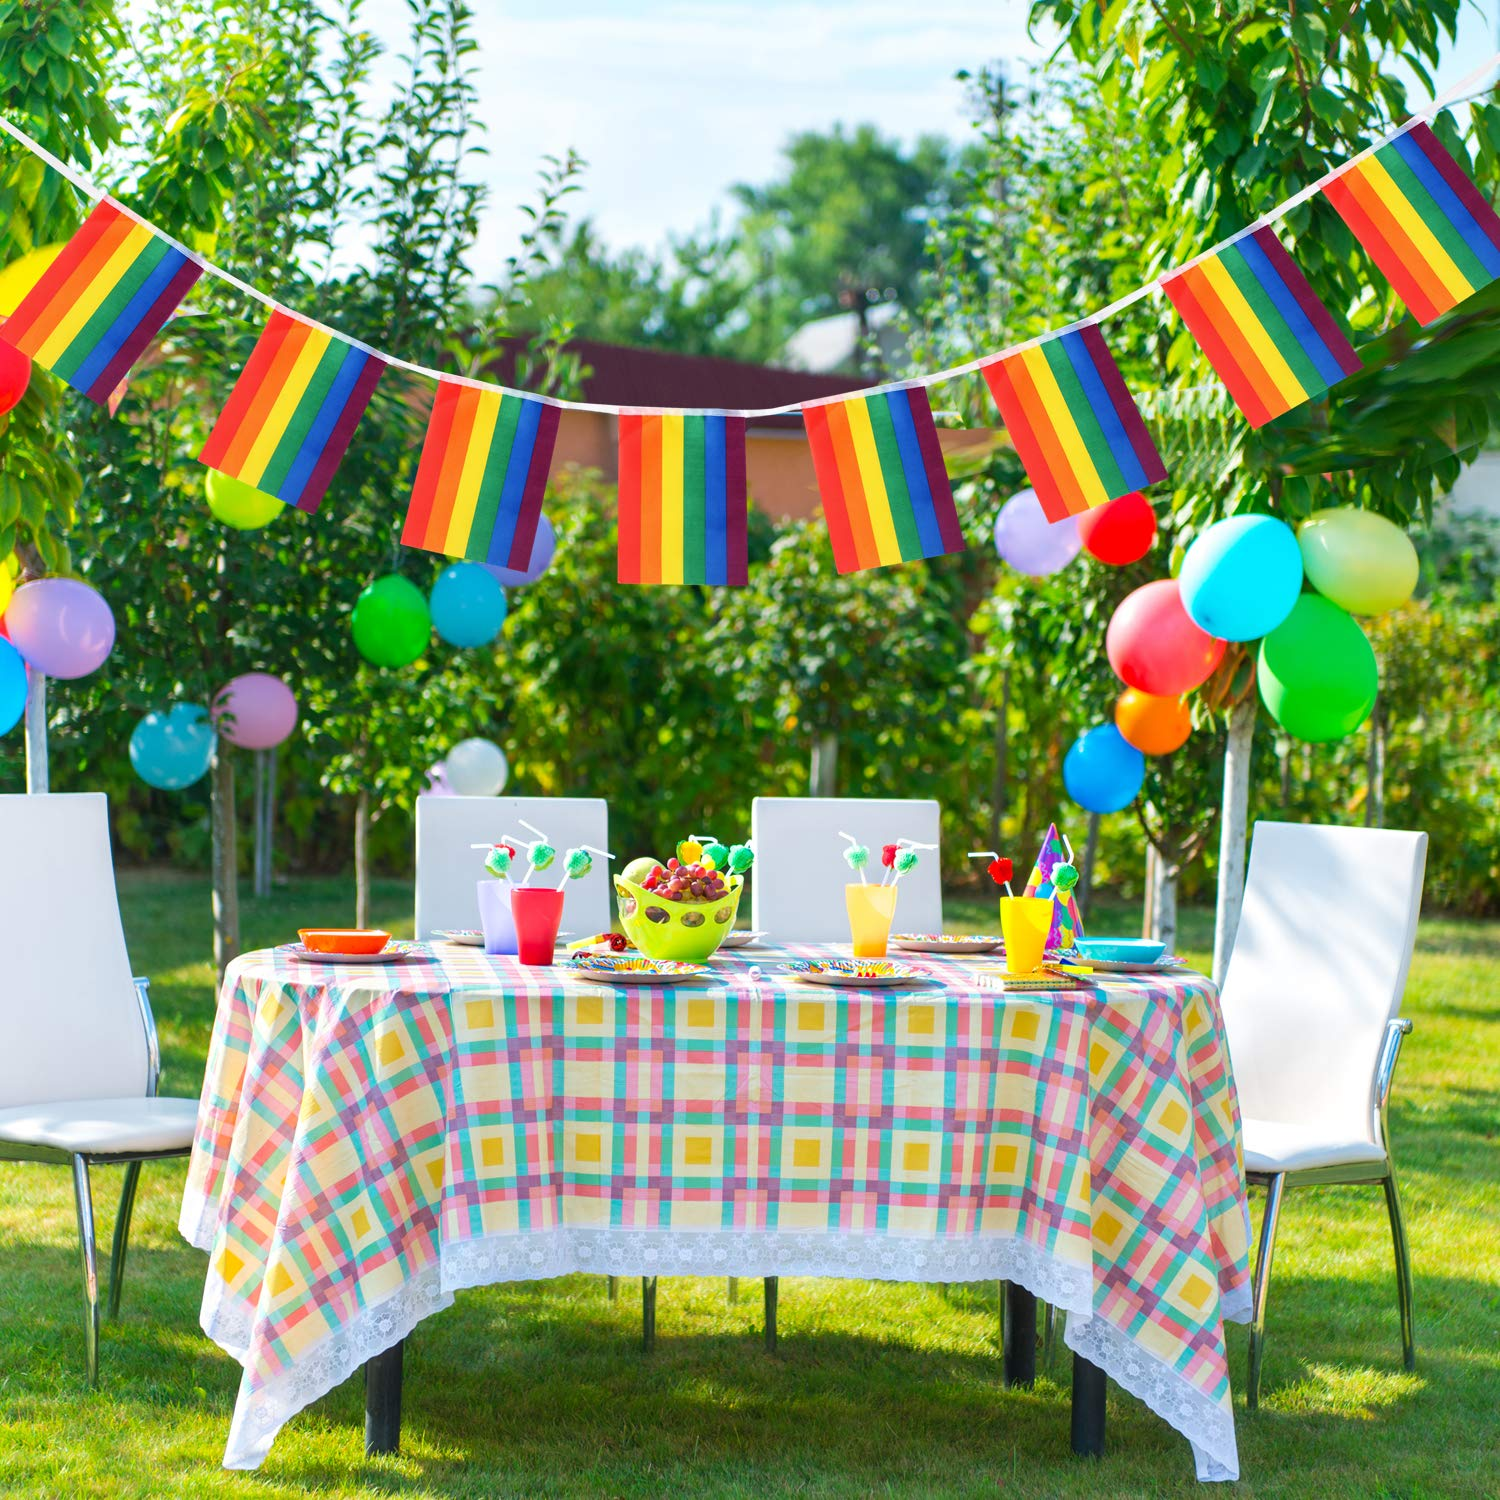 TRIXES 10M Rainbow Bunting Multicoloured String Garland Decoration for LGBT Pride Events 38 8 x 5in Rectangular Flags